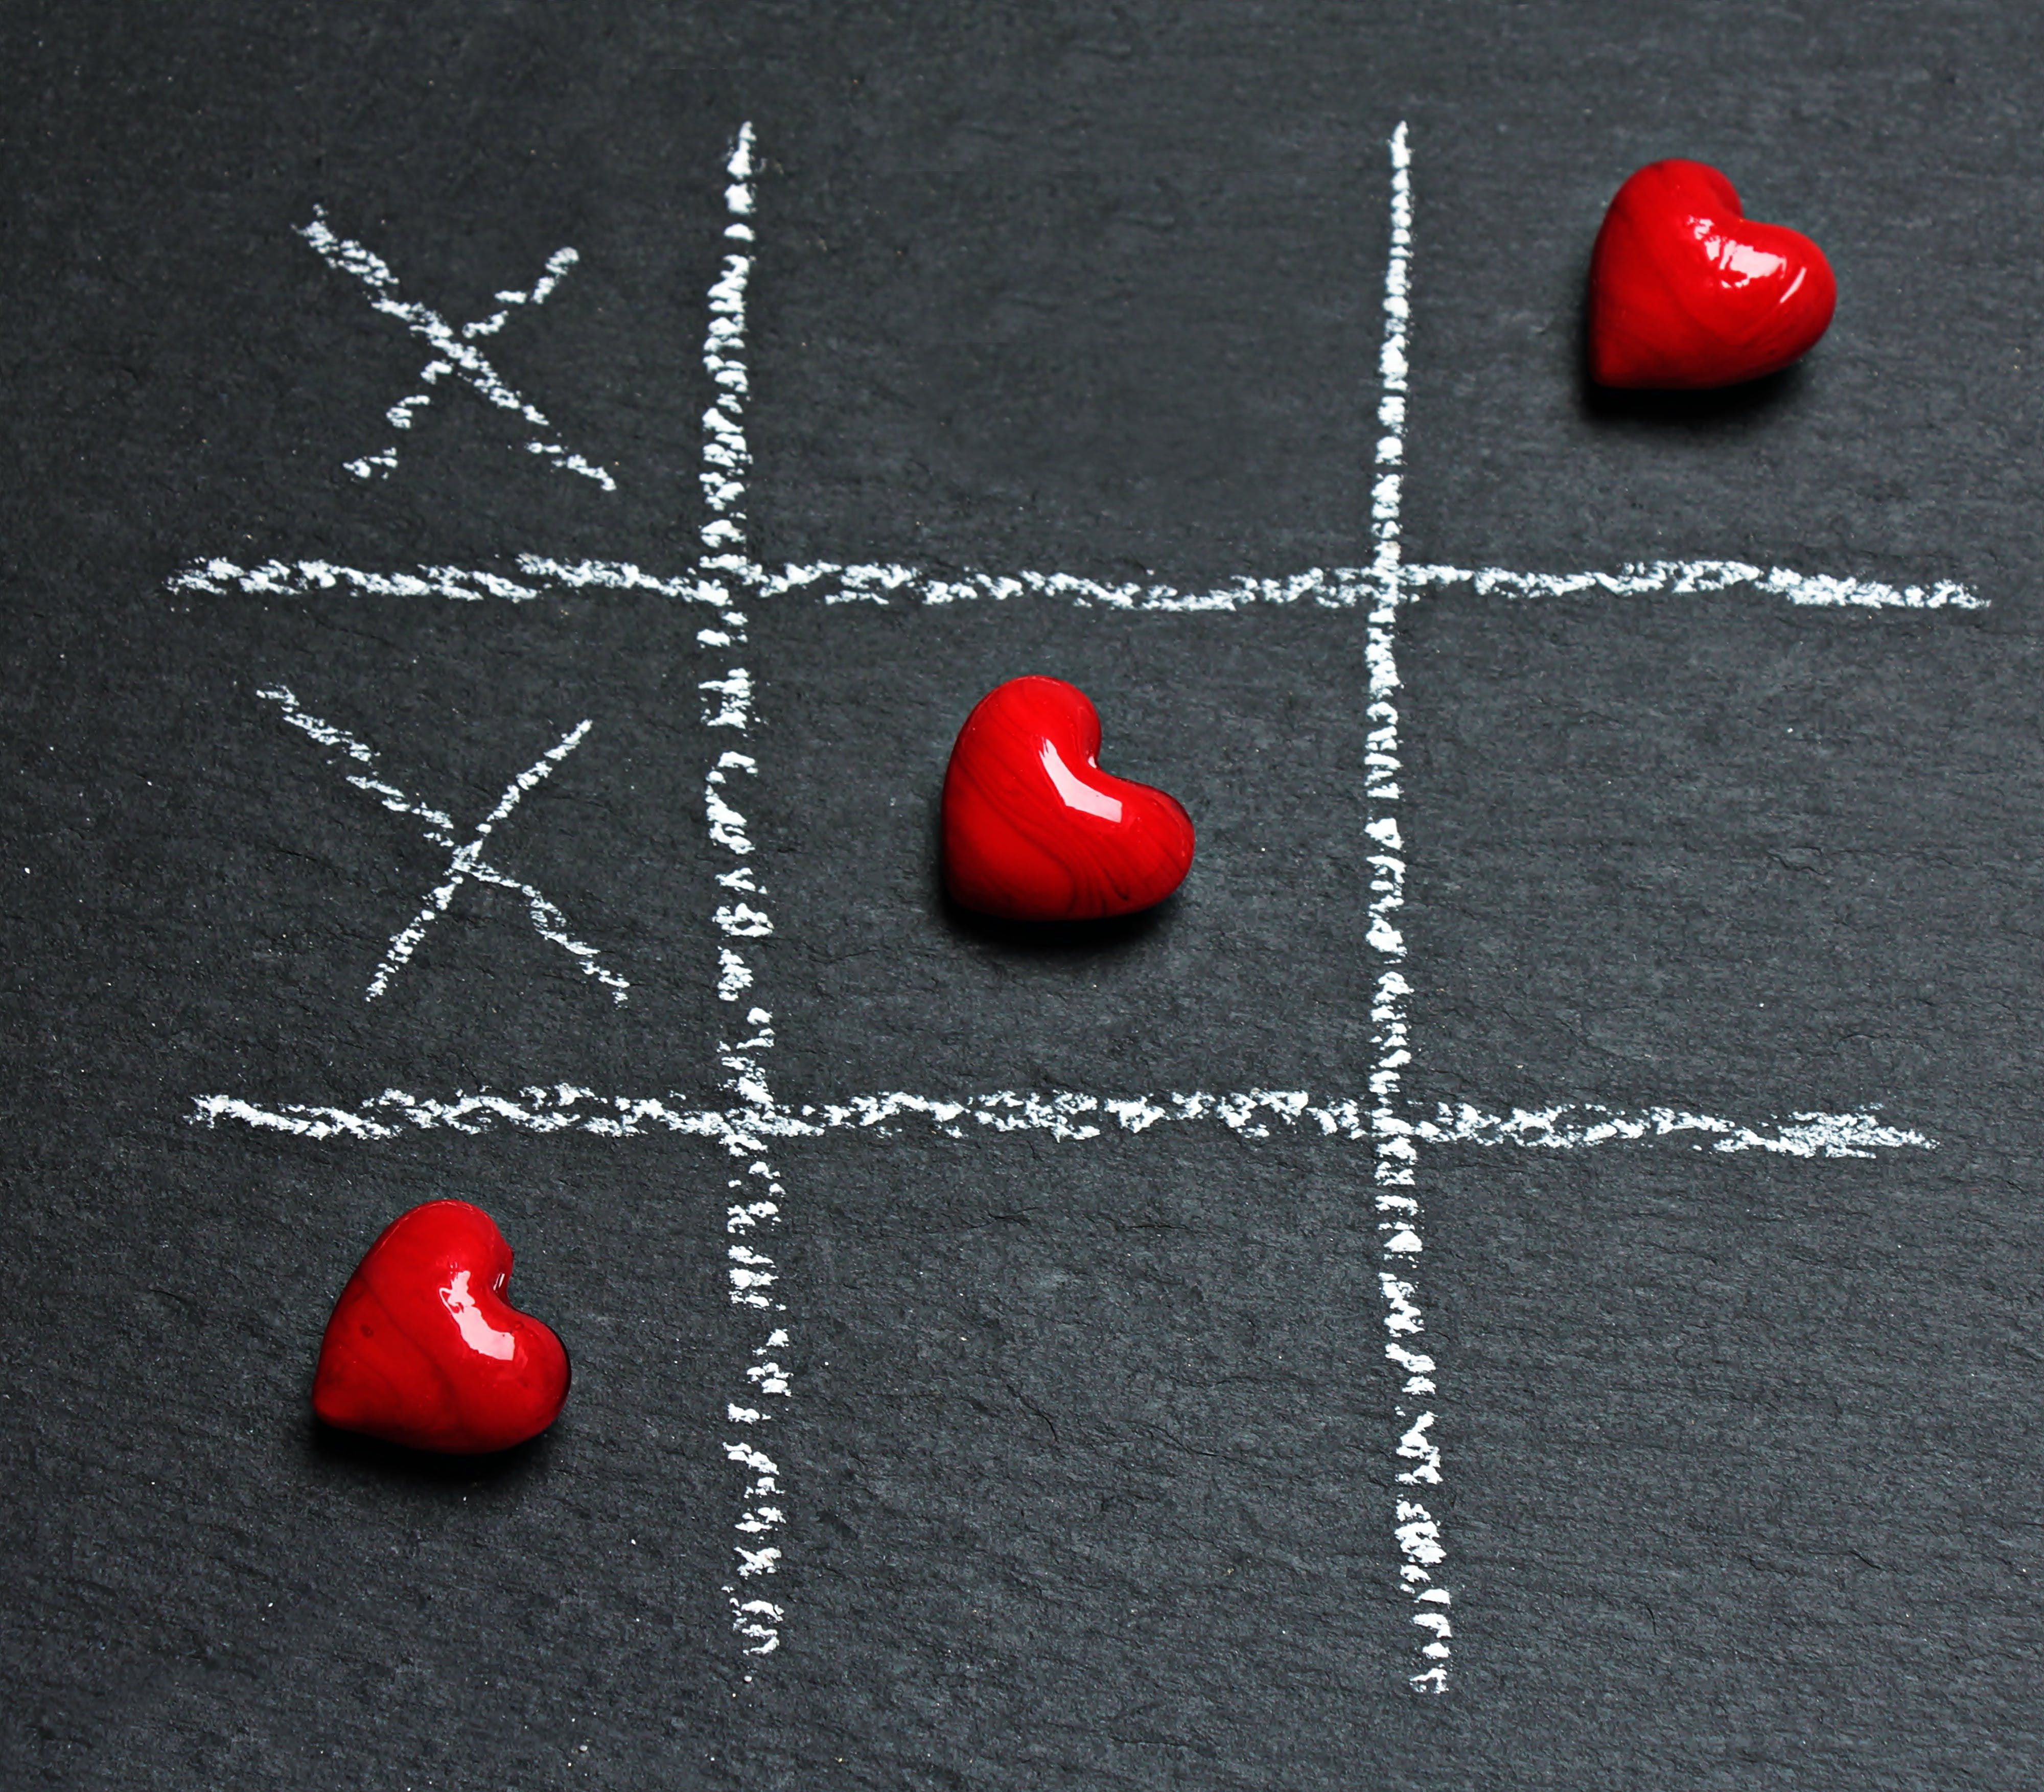 Three Heart-shaped Red Stones Placed on Tic-tac-toe Game Bord